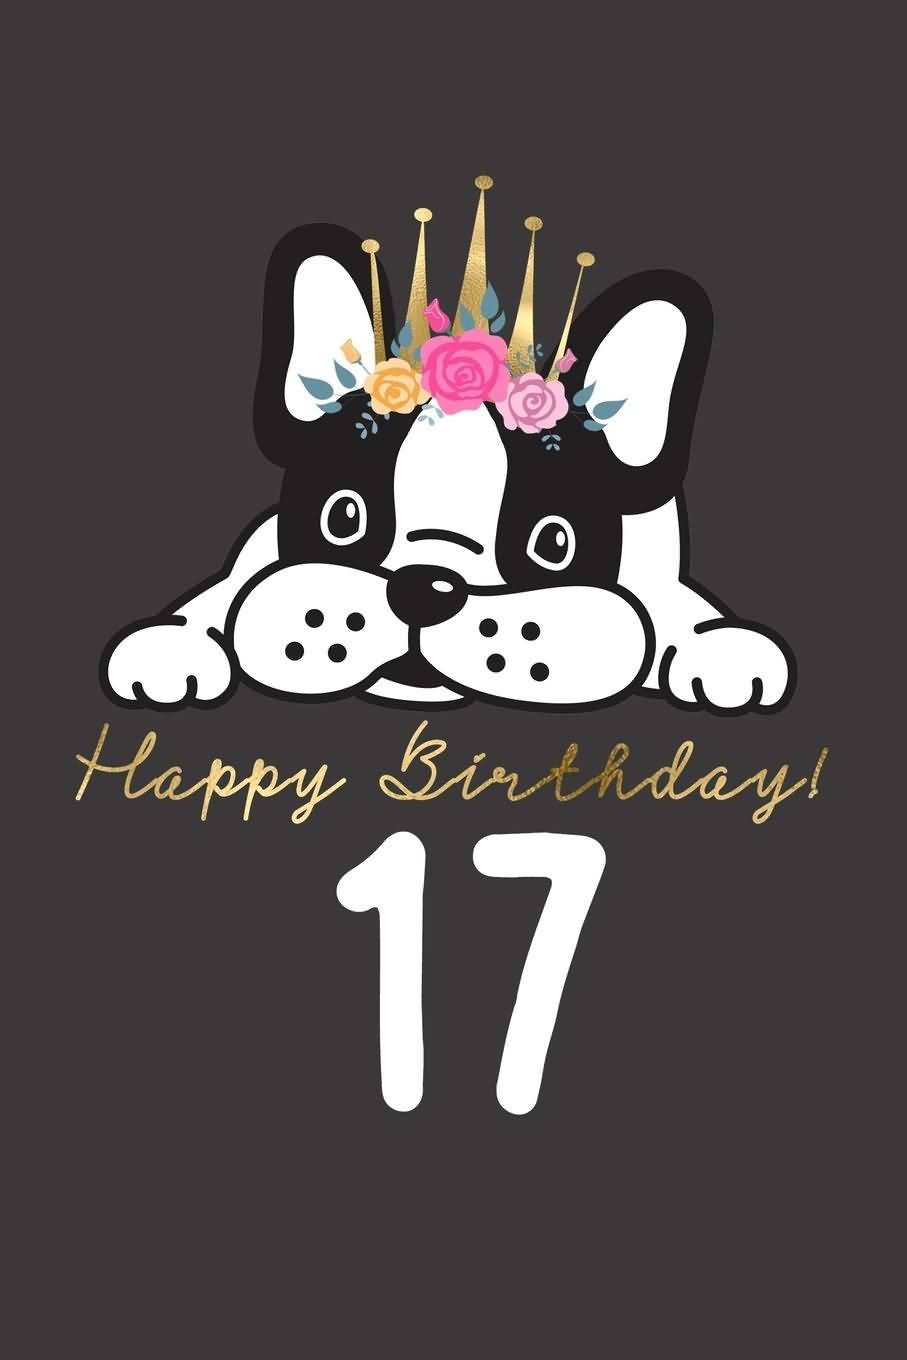 Attractive Happy 17th Birthday Wishes Idea For Facebook